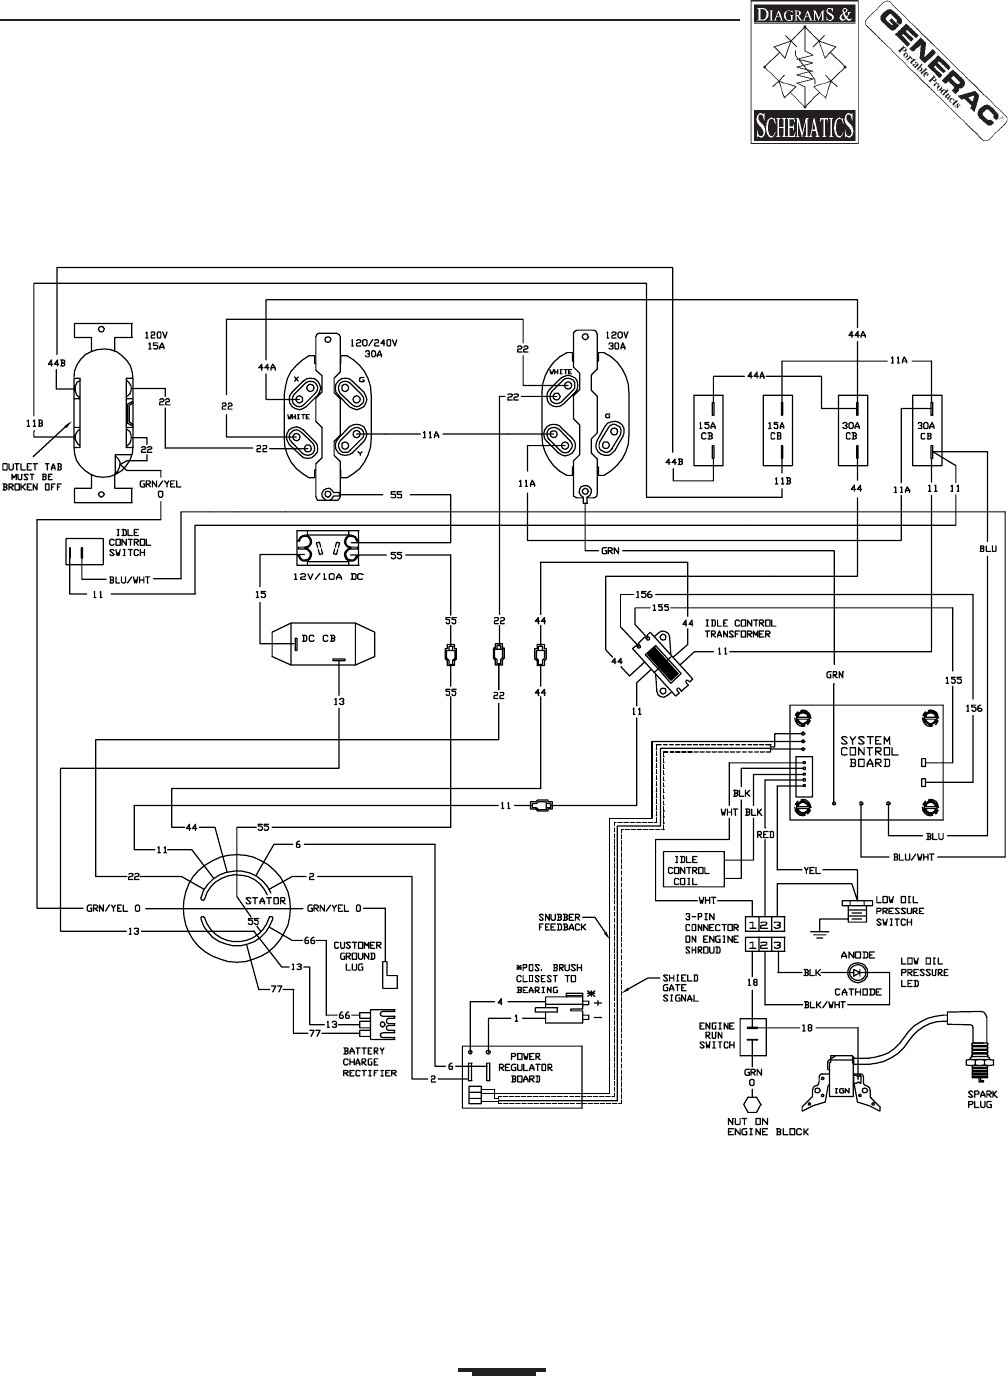 38c29e63 4610 4d0c 9aae d948c0ee2240 bgf?resize\\\\\\\\\\\\\=665%2C908 zig control panel wiring diagram zig wiring diagrams collection  at fashall.co